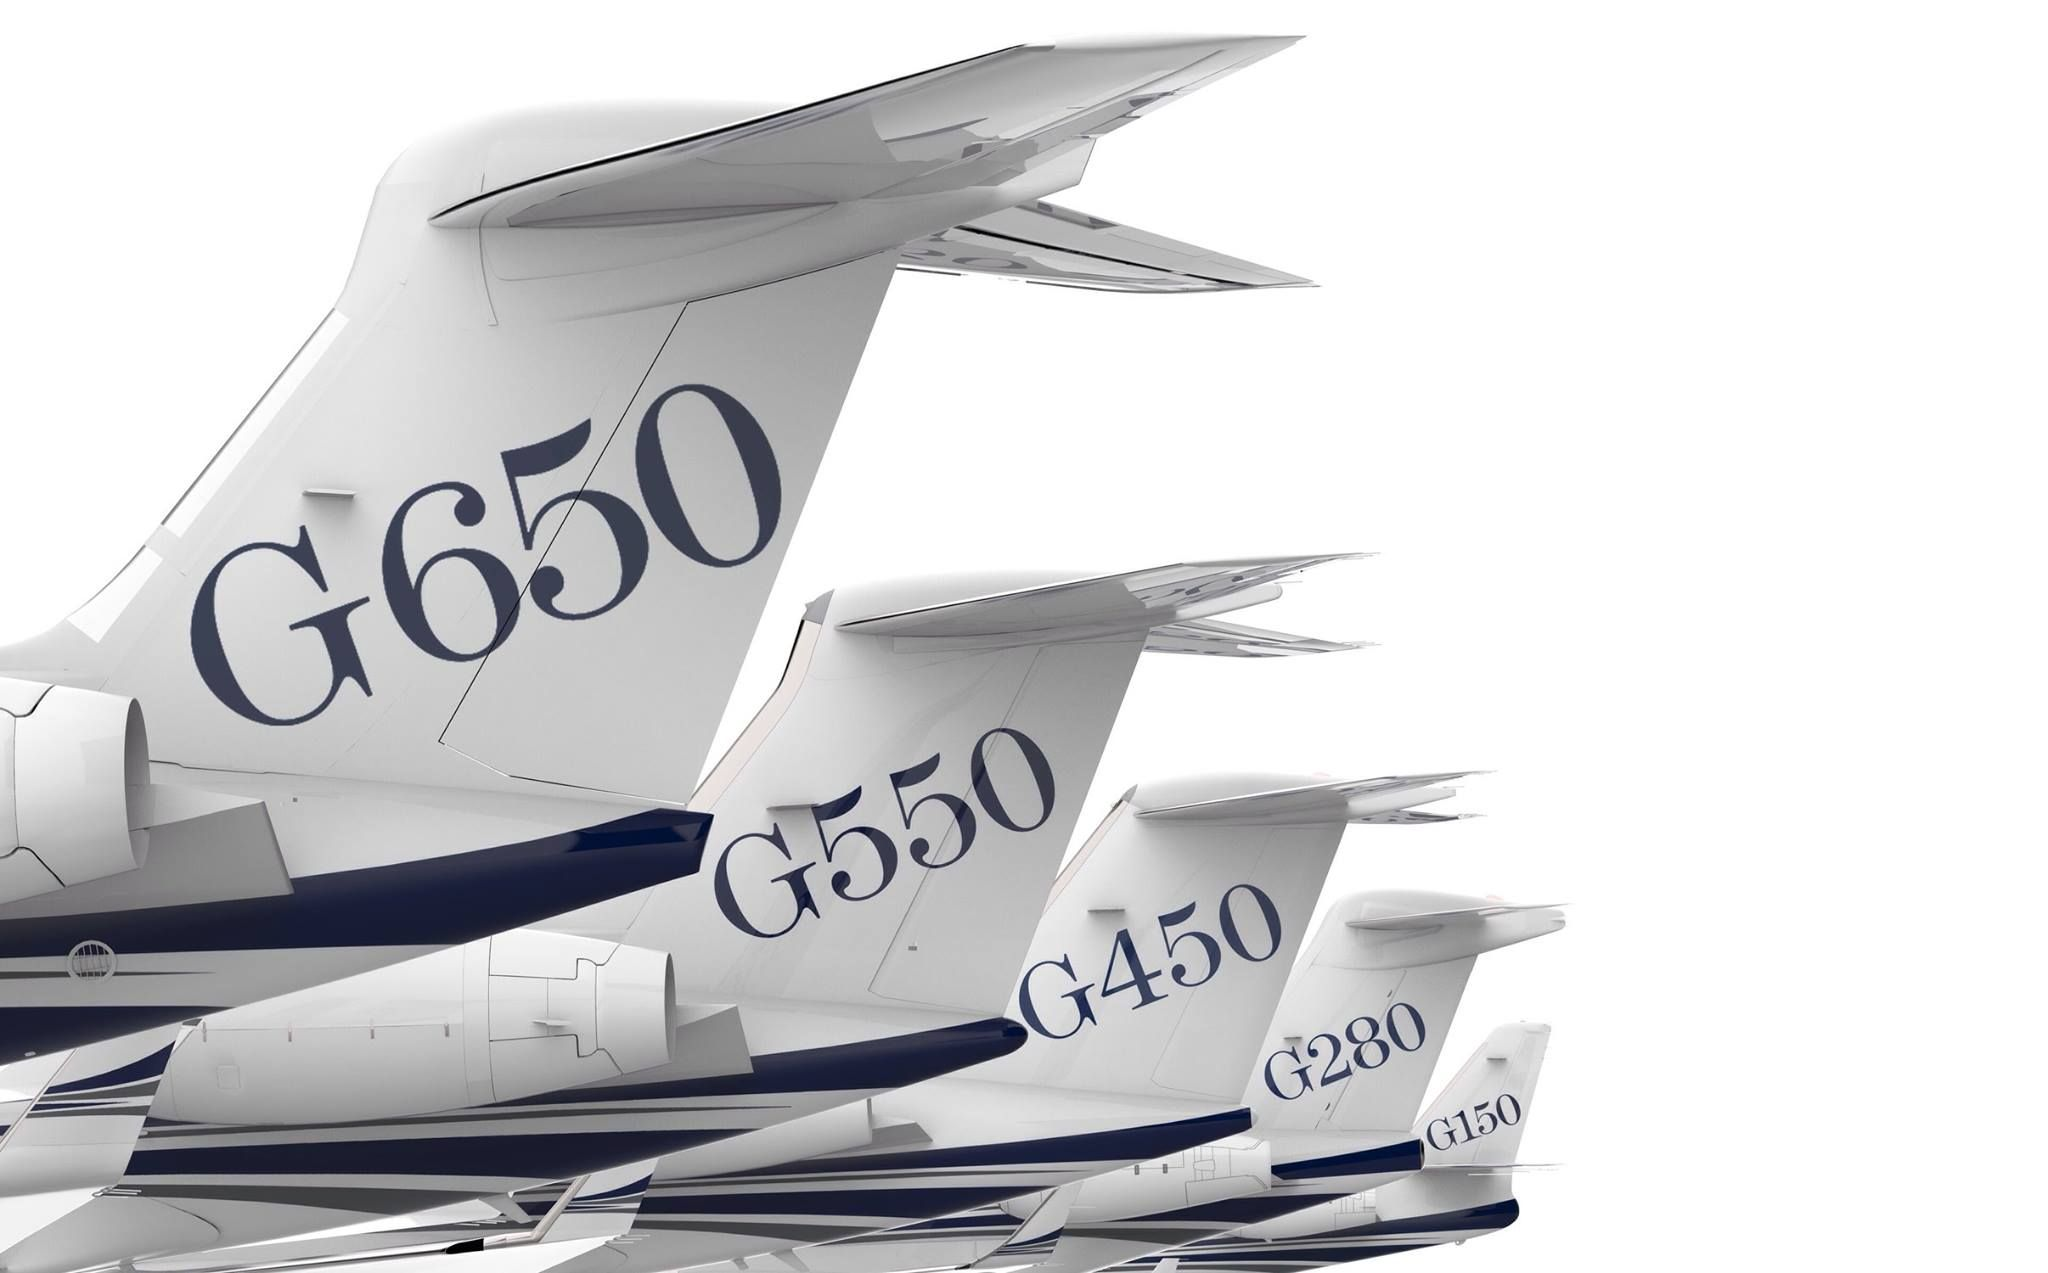 2 X NEW GULFSTREAM G650 FOR SALE. AIRCRAFT FOR SALE